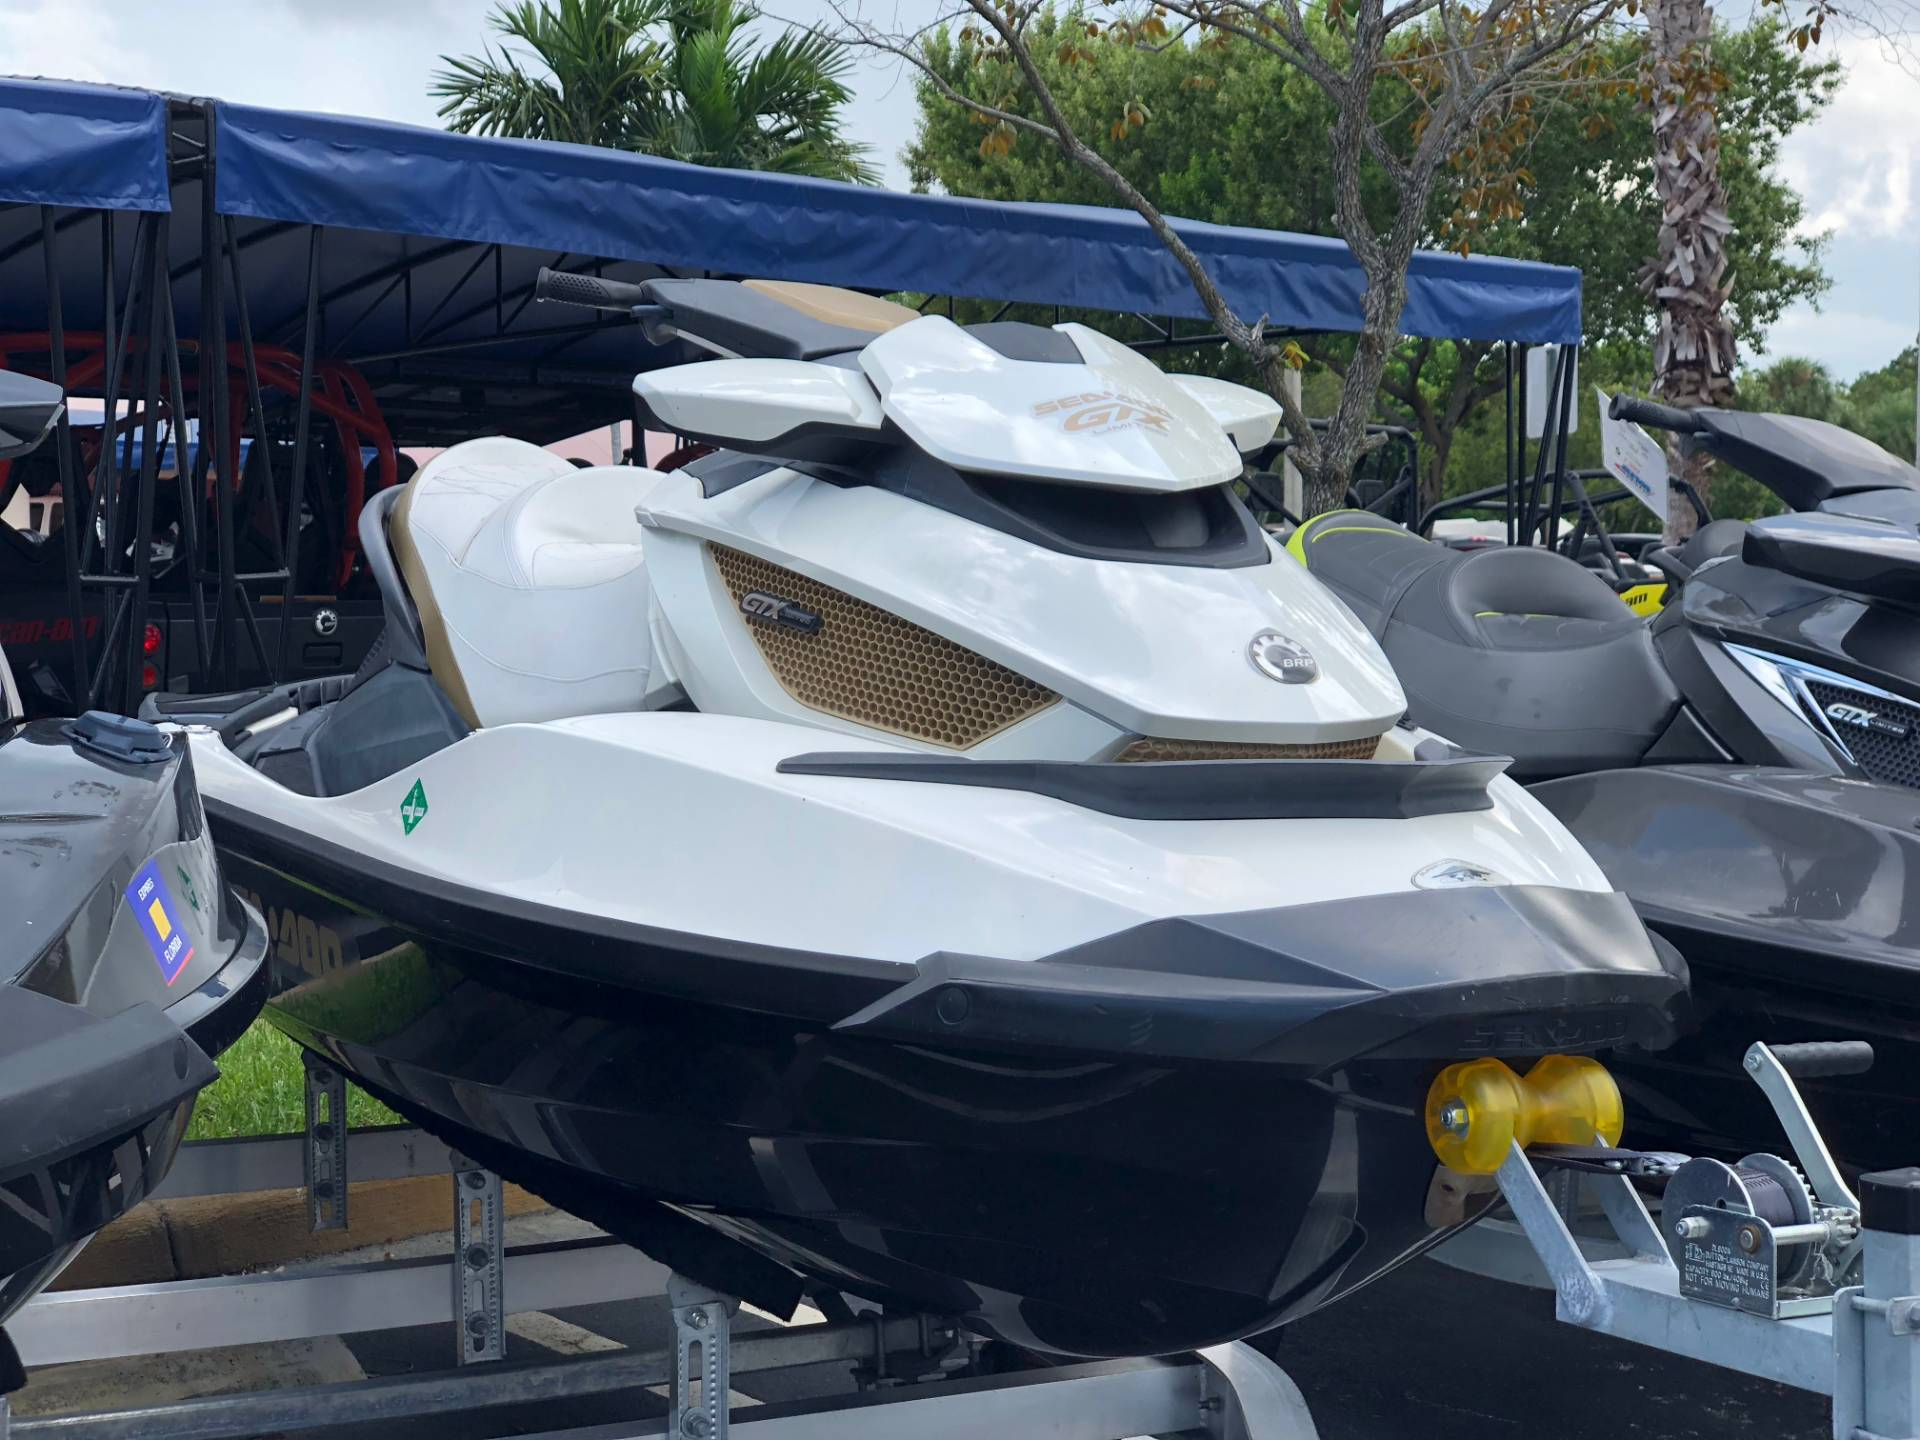 2012 Sea-Doo GTX Limited iS™ 260 in Pompano Beach, Florida